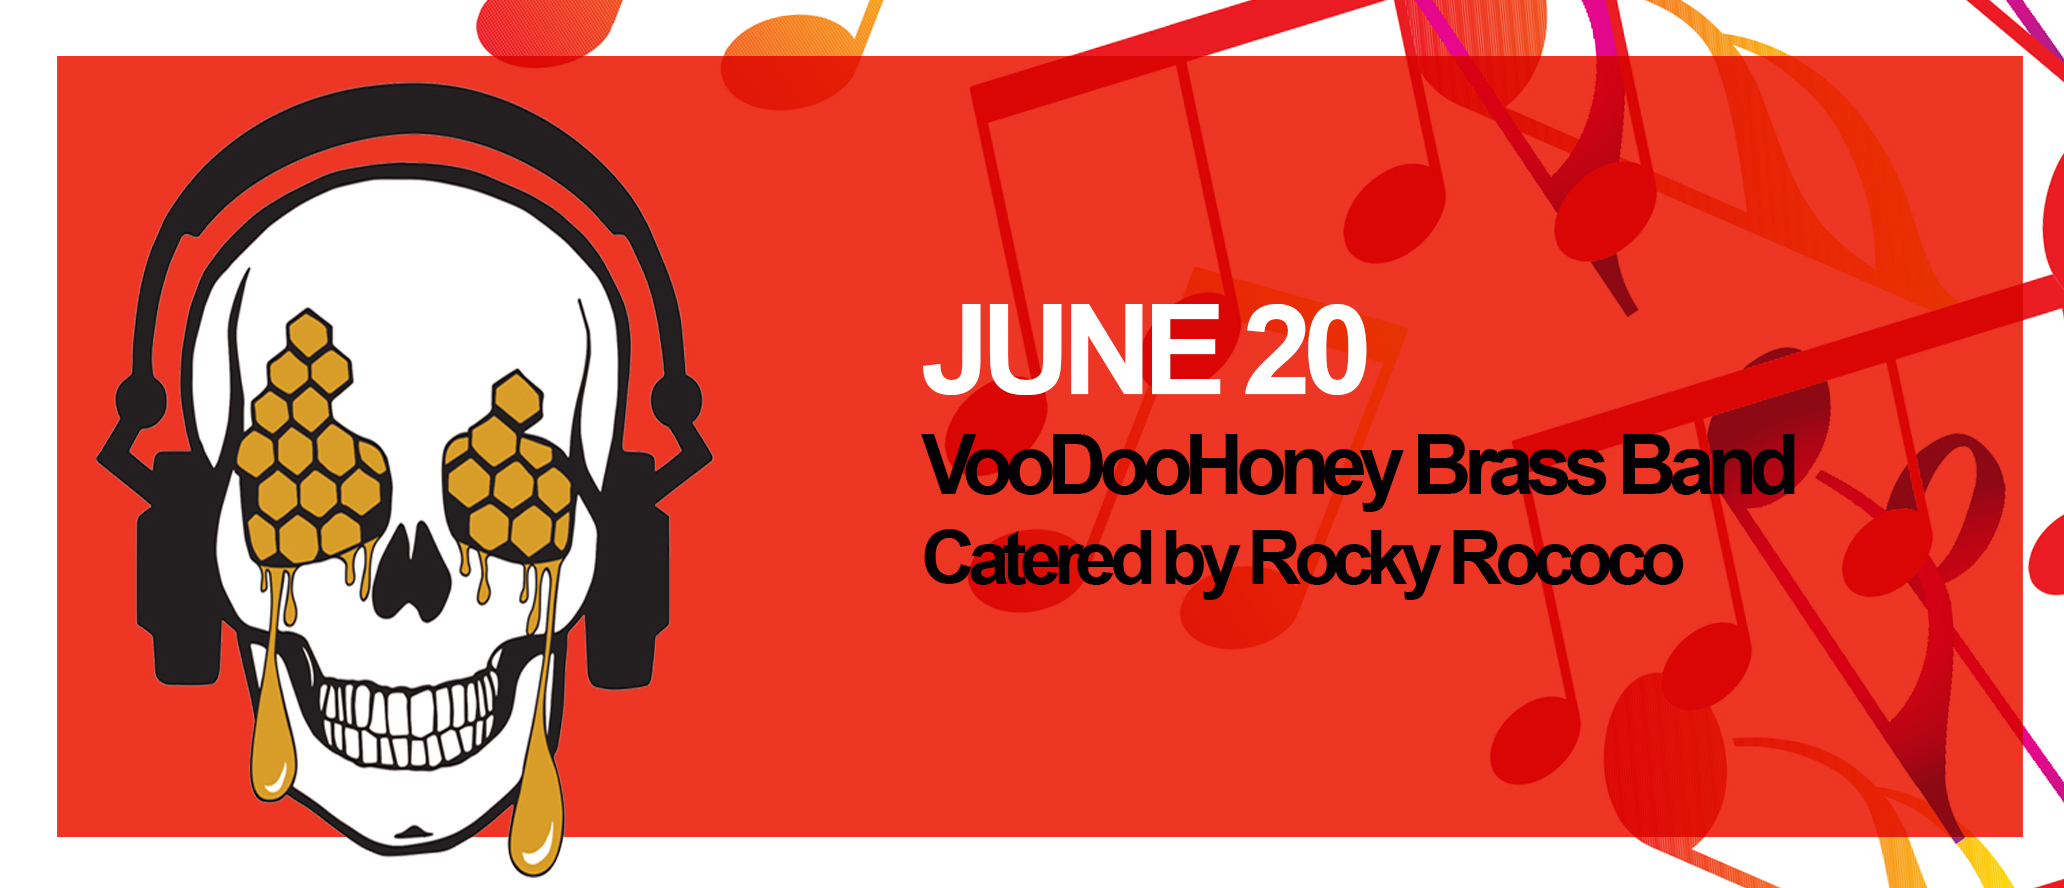 June 20: VooDooHoney Brass Band with food by Rocky Rococo